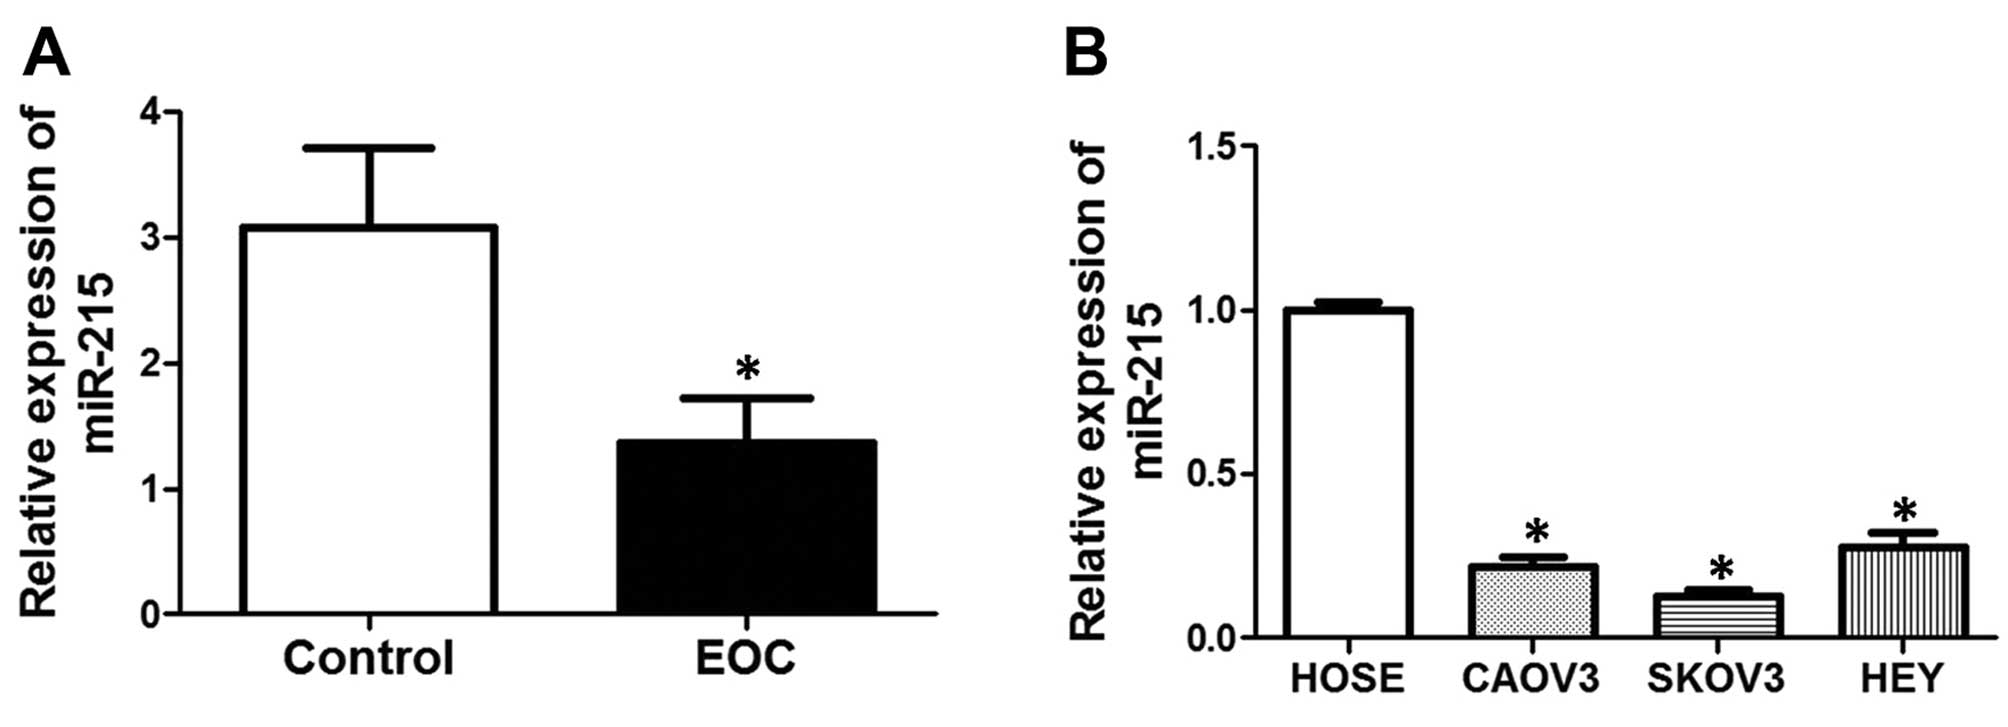 miR-215 functions as a tumor suppressor in epithelial